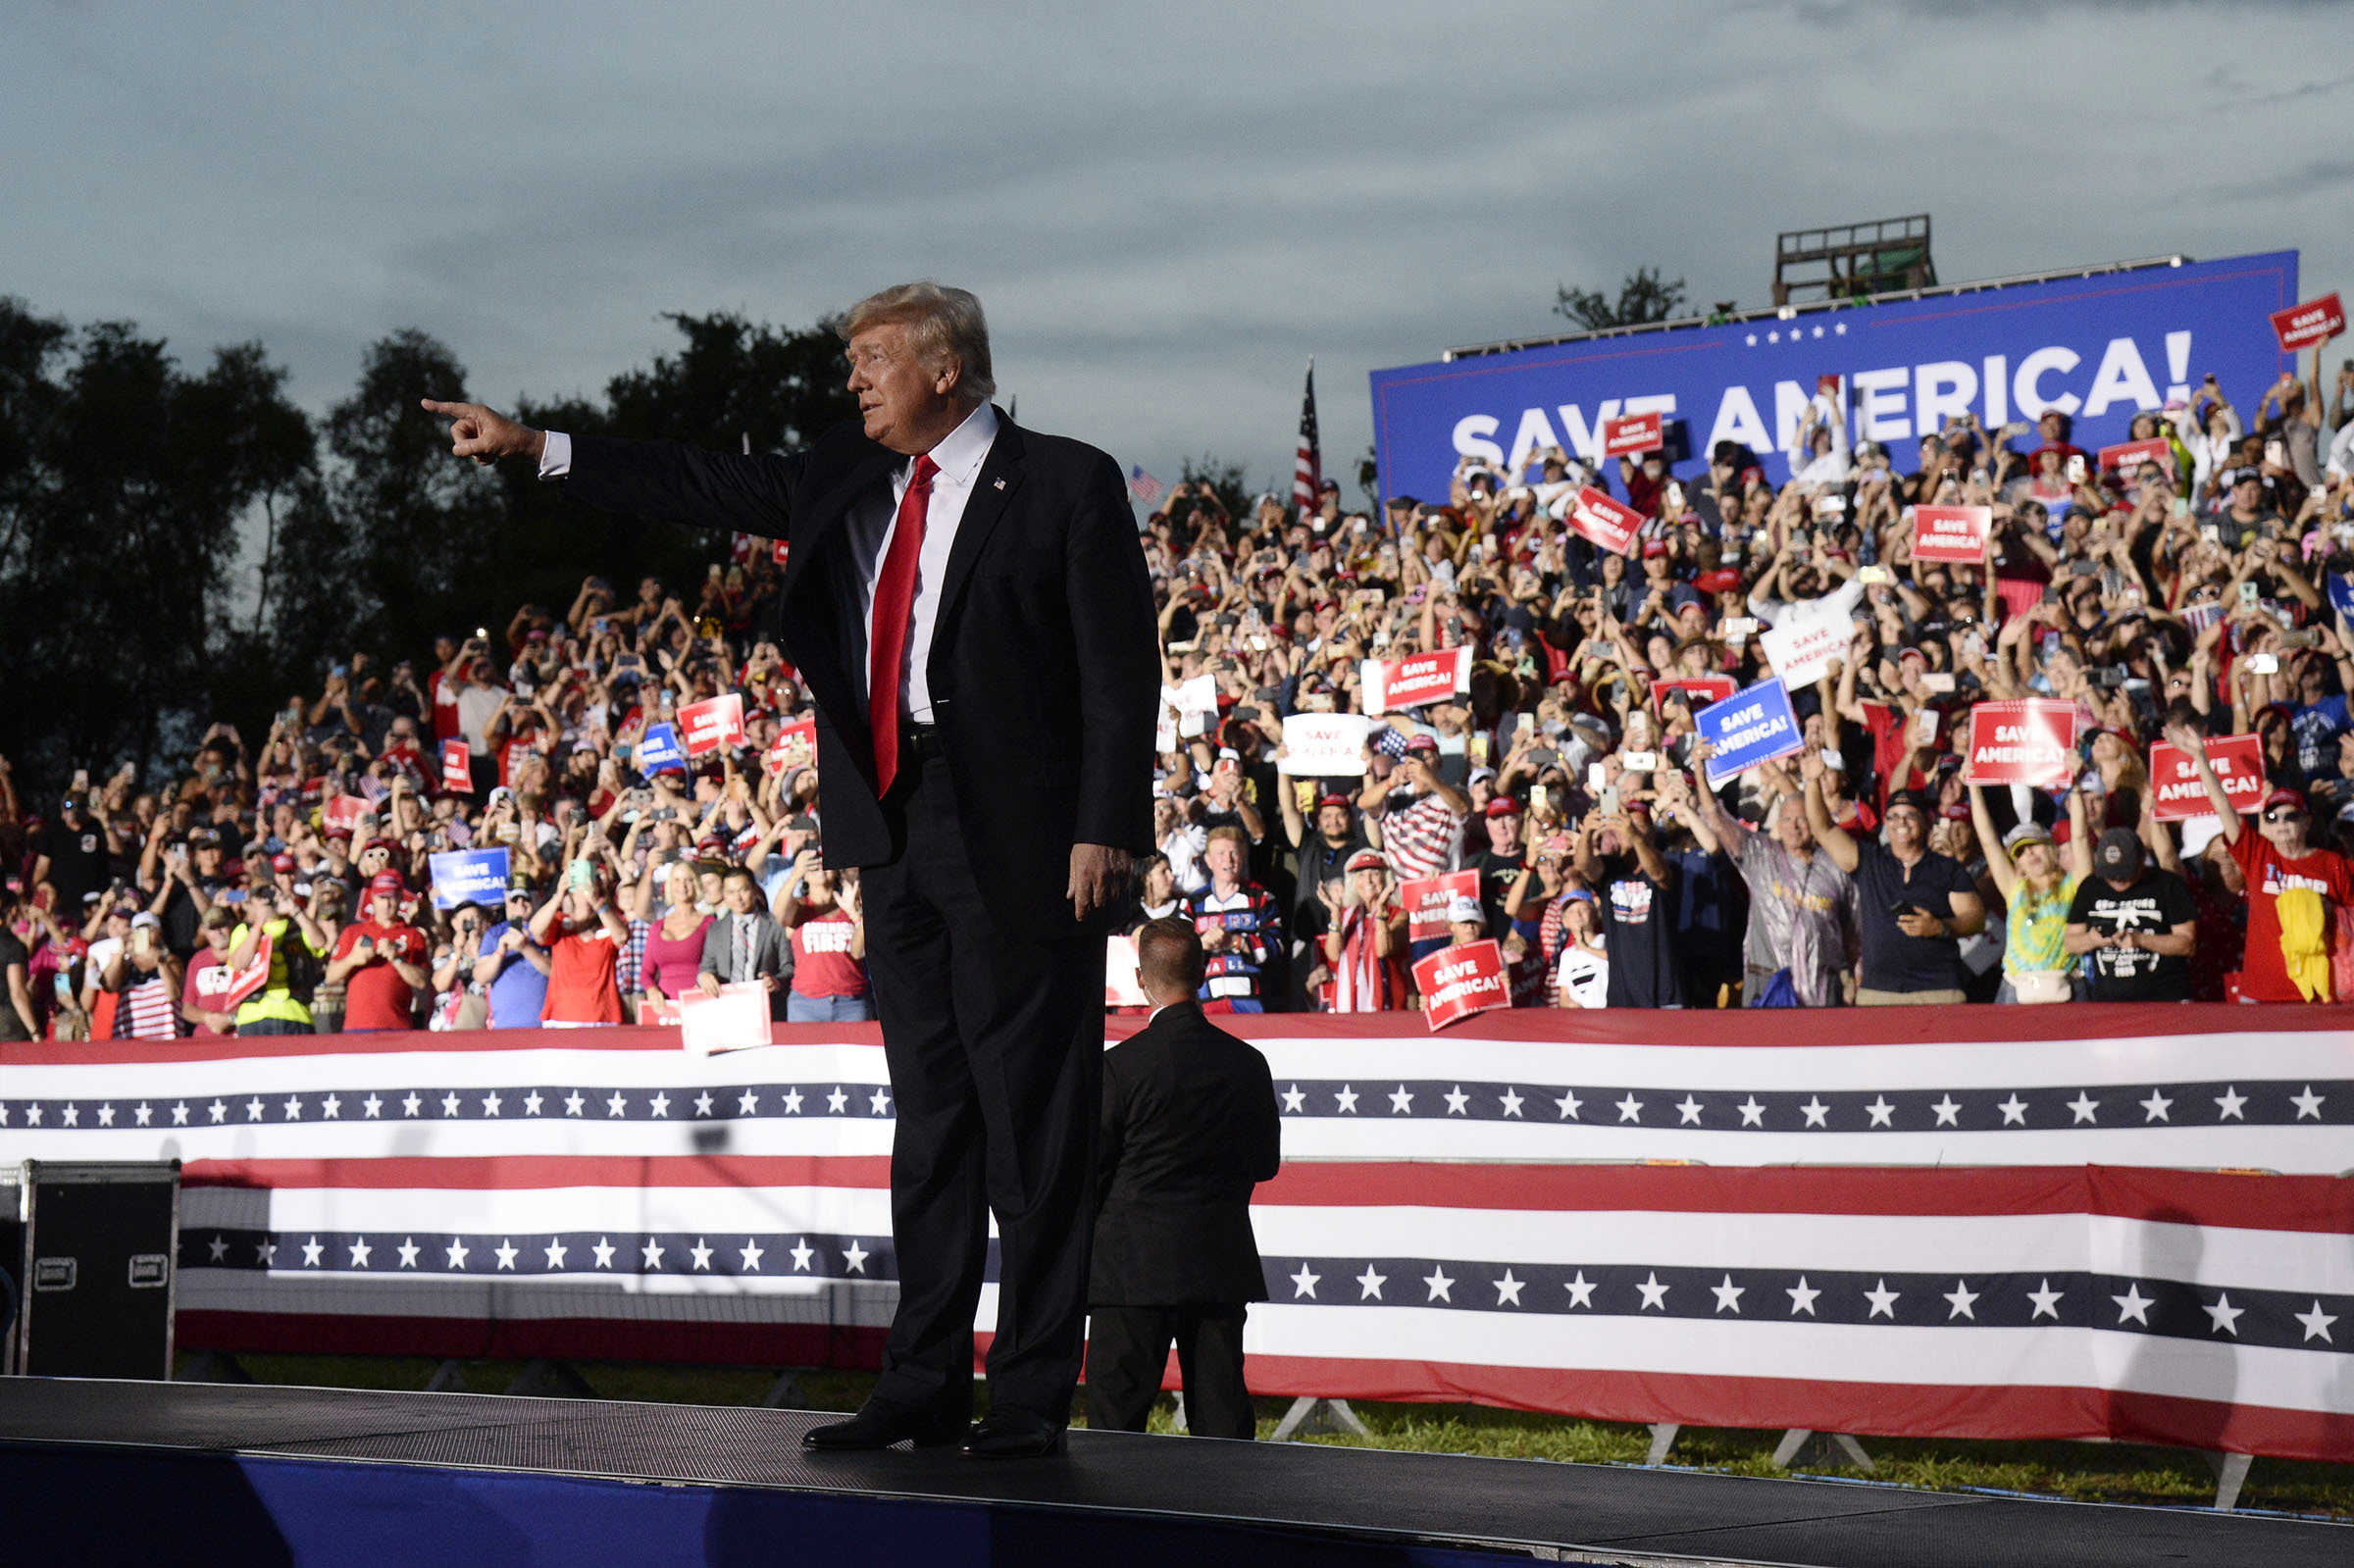 Former President Donald Trump walks on stage during a rally at the Sarasota Fairgrounds July 3, 2021, in Sarasota, Fla.